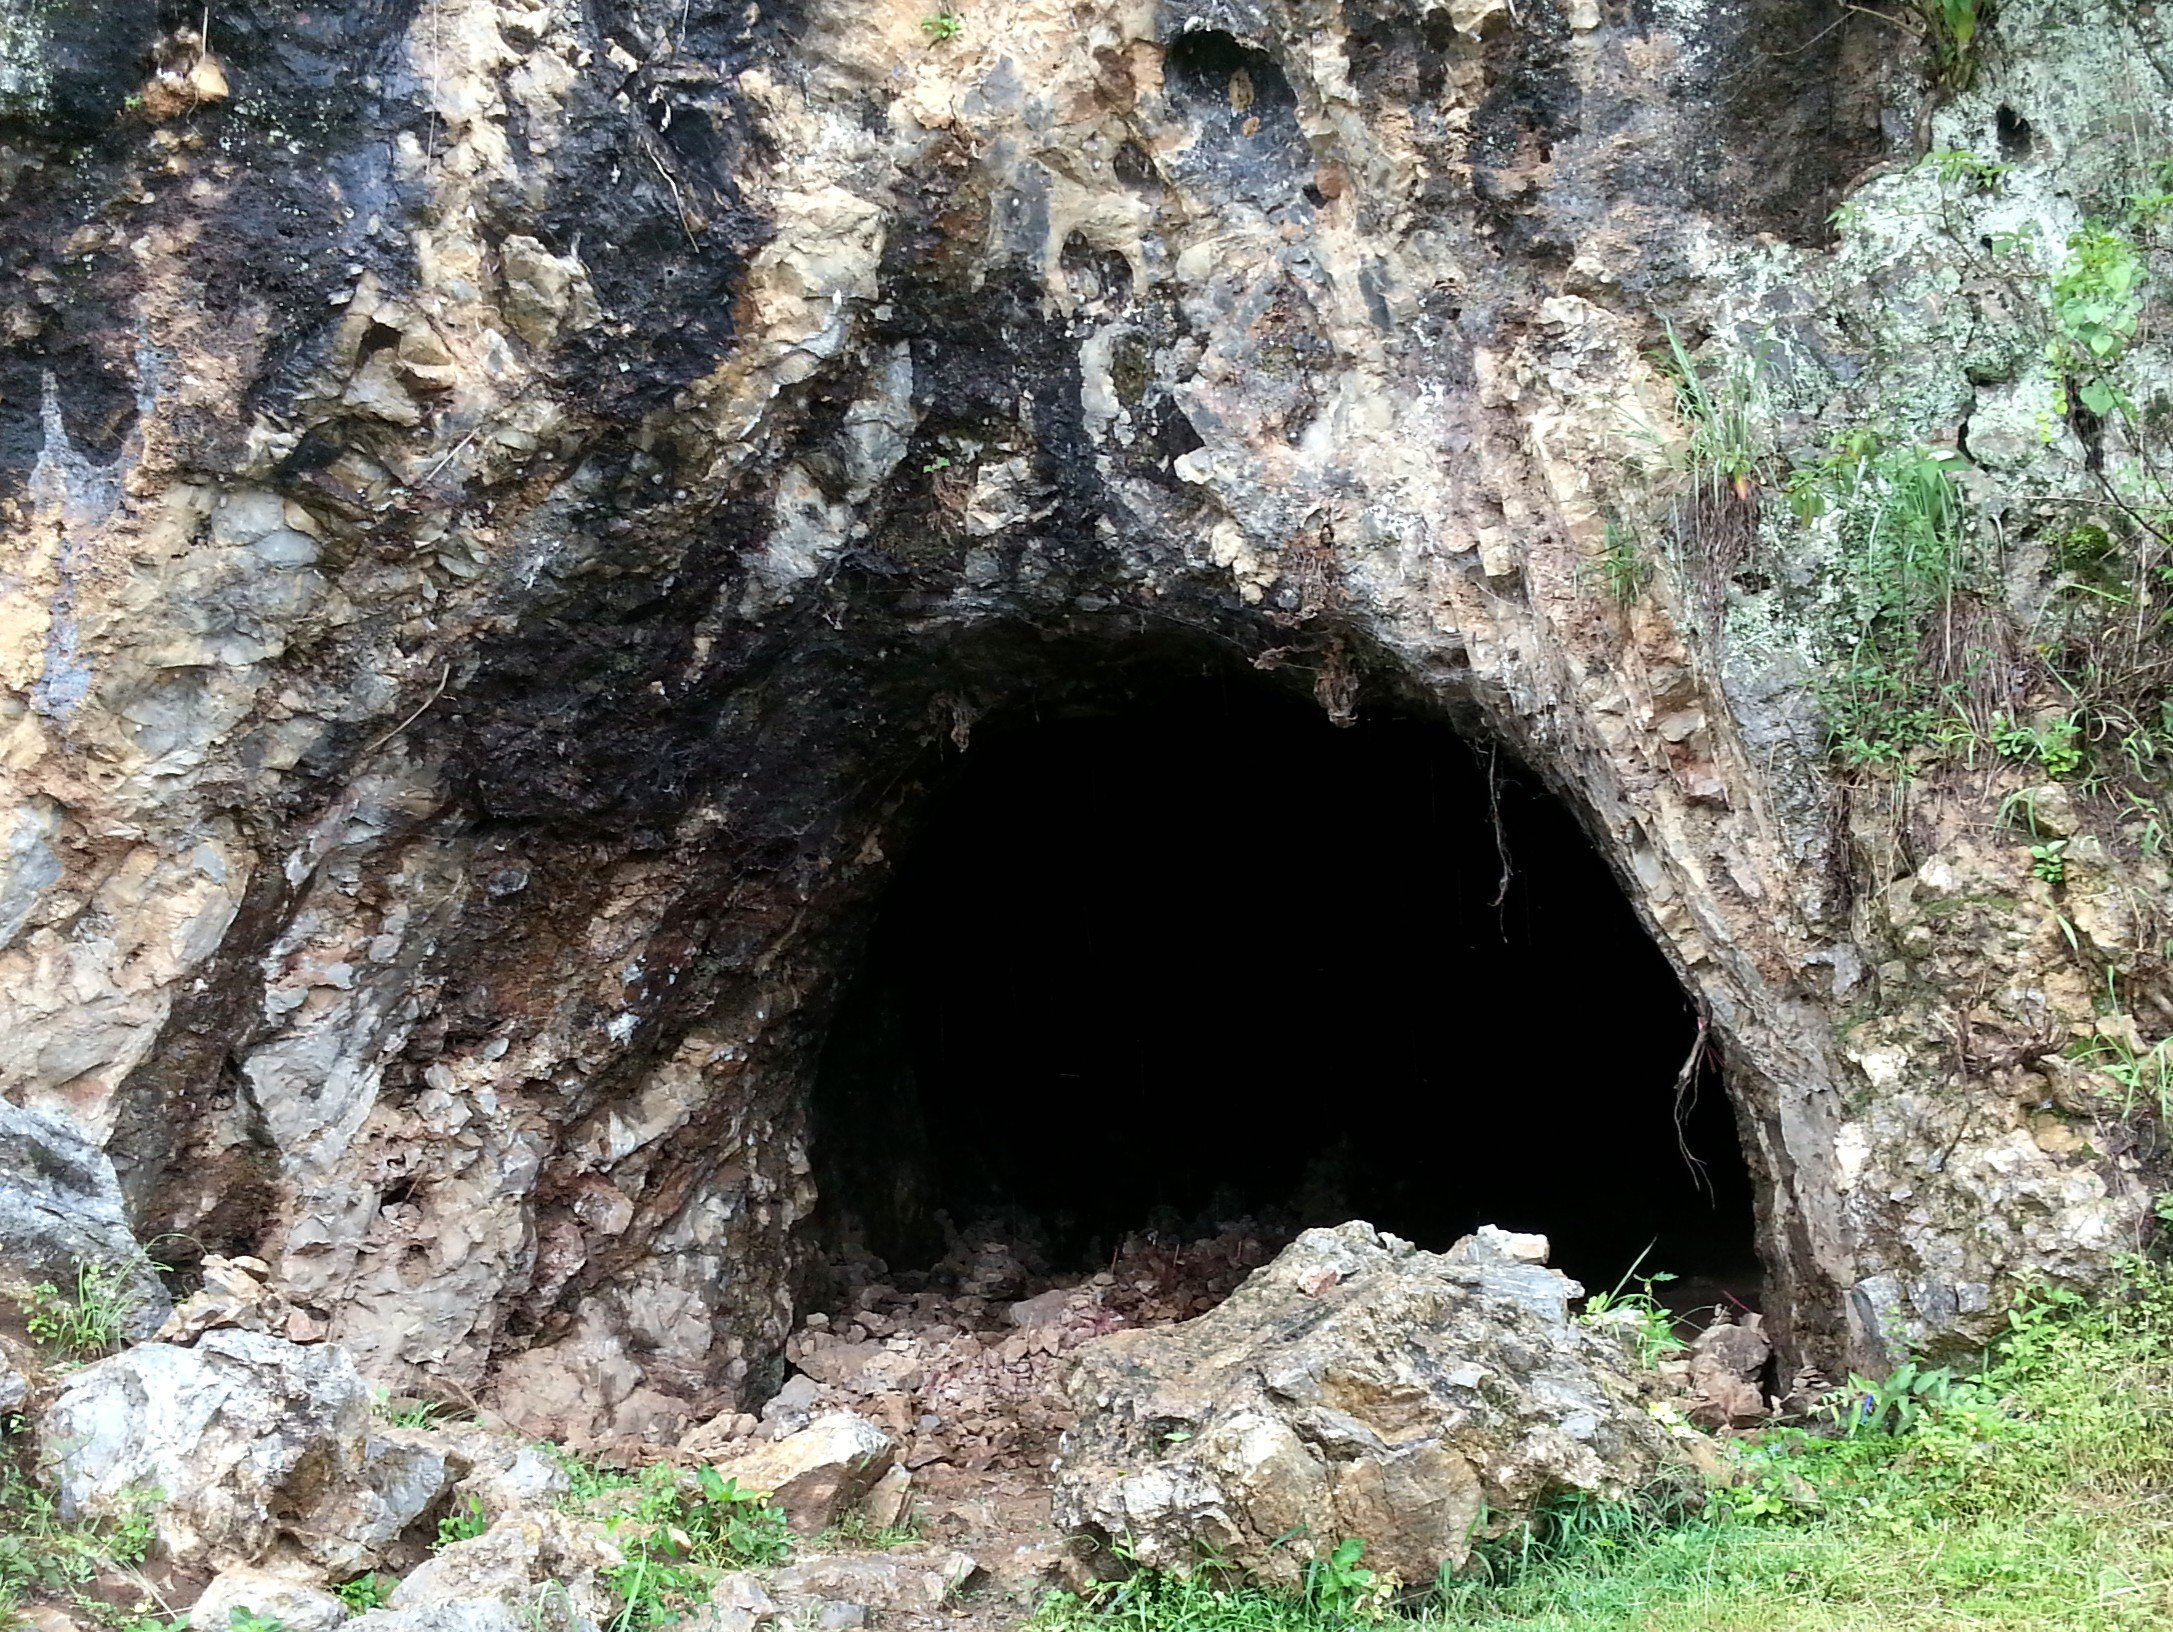 Entrance to the cave at Jar Site 1